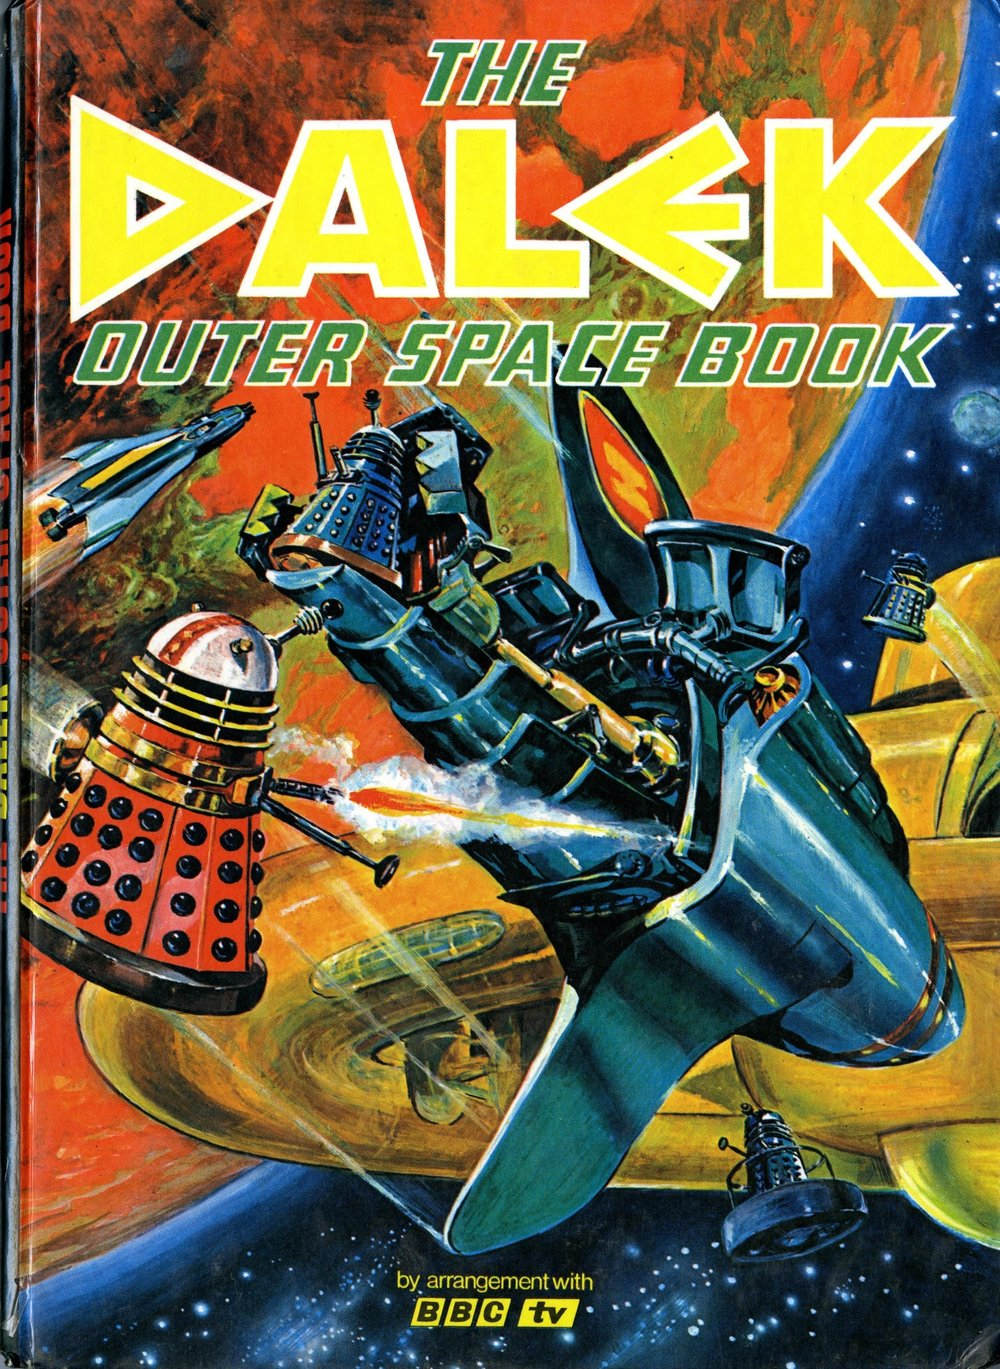 Souvenir Press Ltd., in conjunction with Panther Books Ltd., The Dalek Outer Space Book